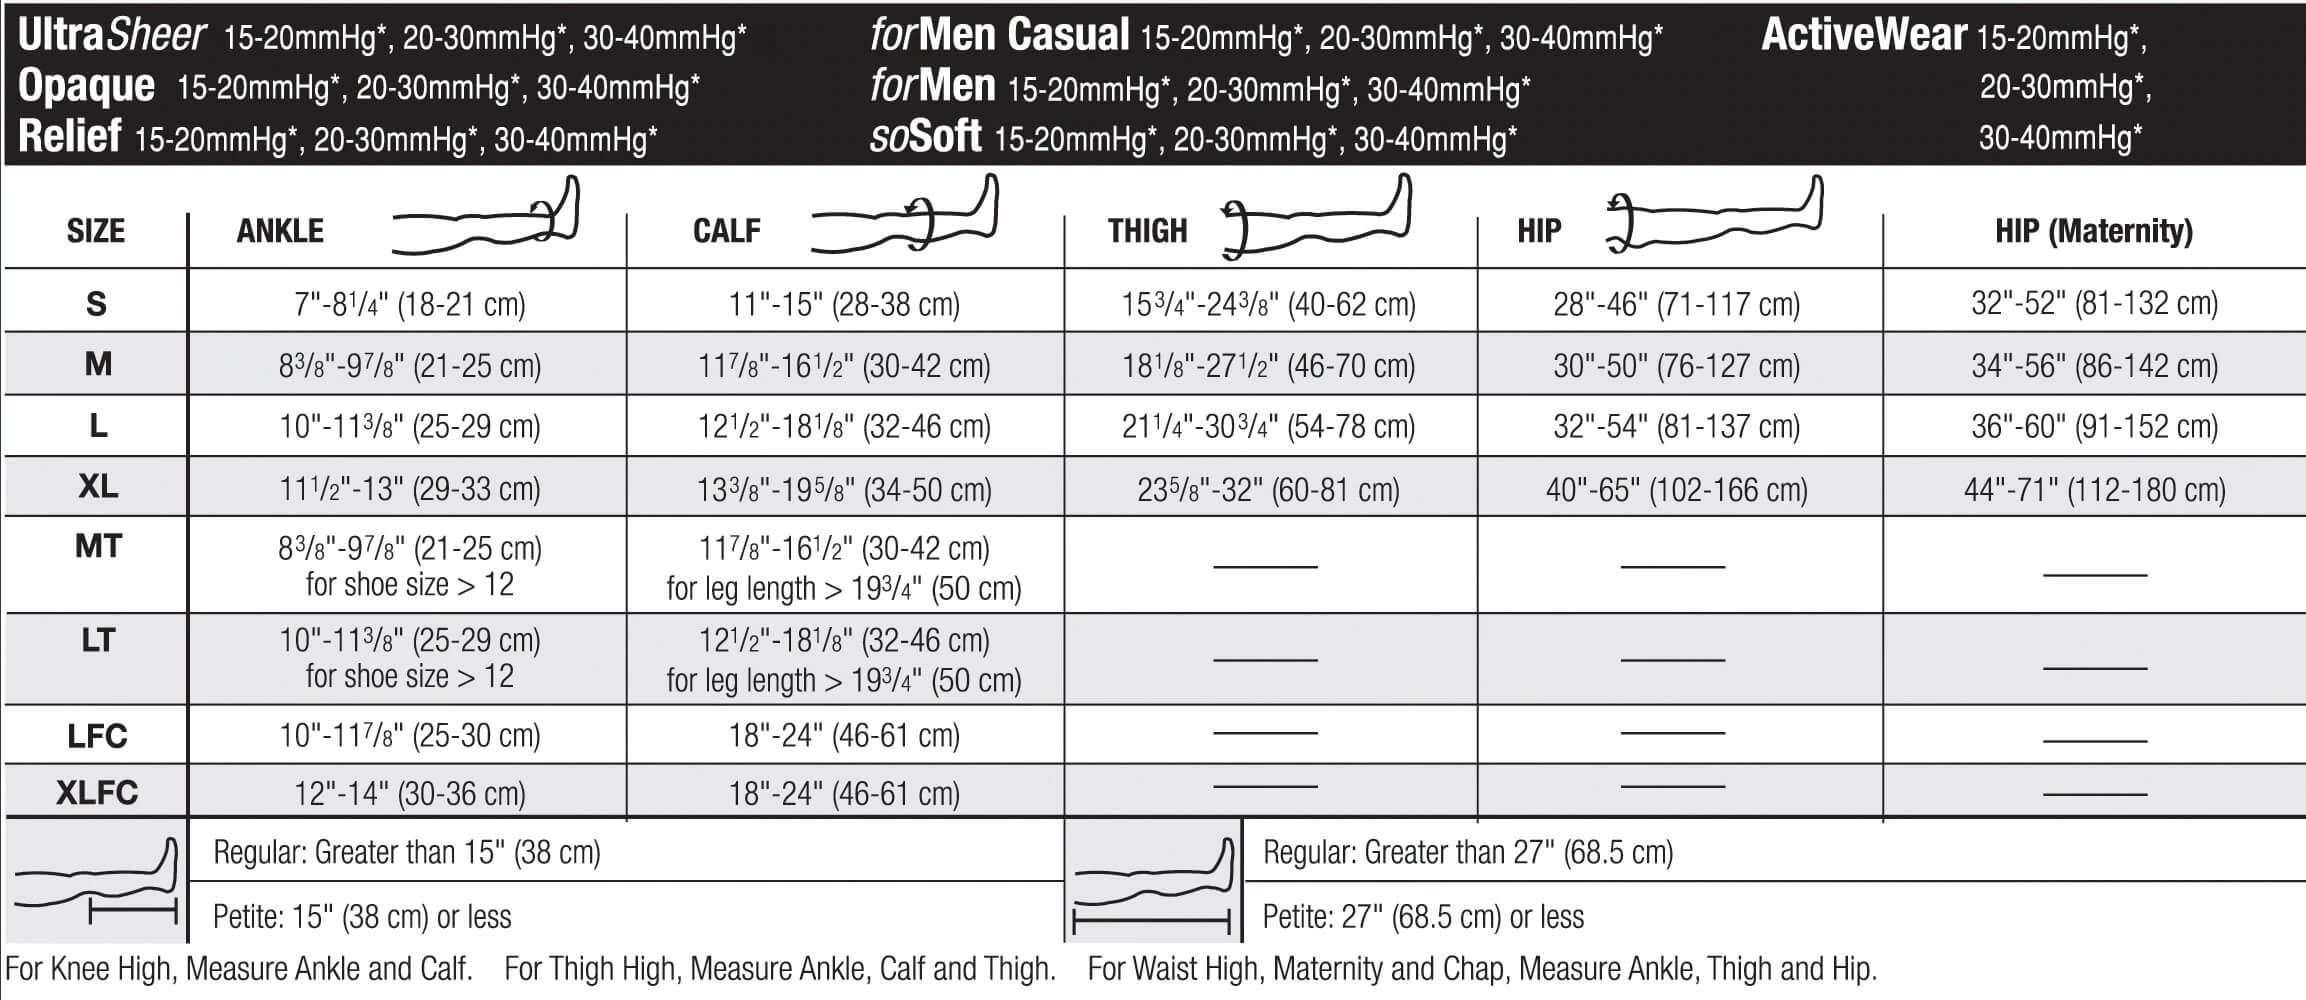 jobst-opaque-compression-stockings-sizing-chart.jpg